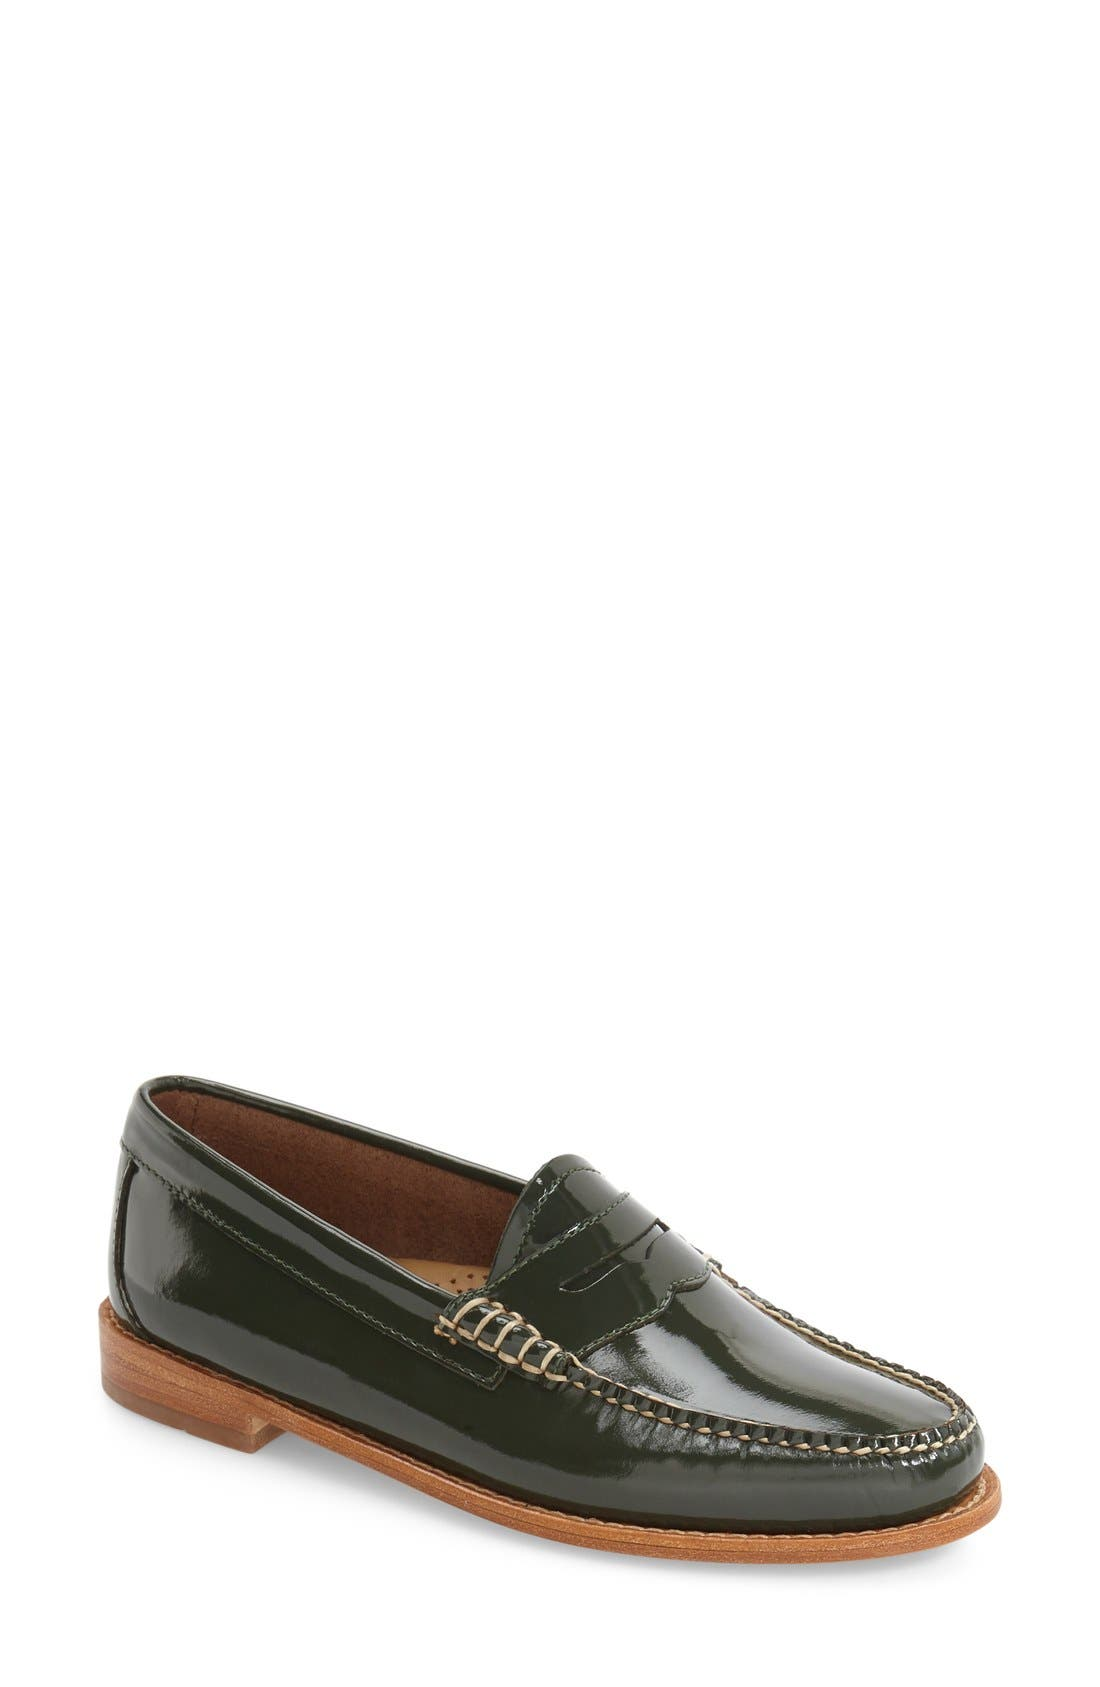 'Whitney' Loafer,                             Main thumbnail 32, color,